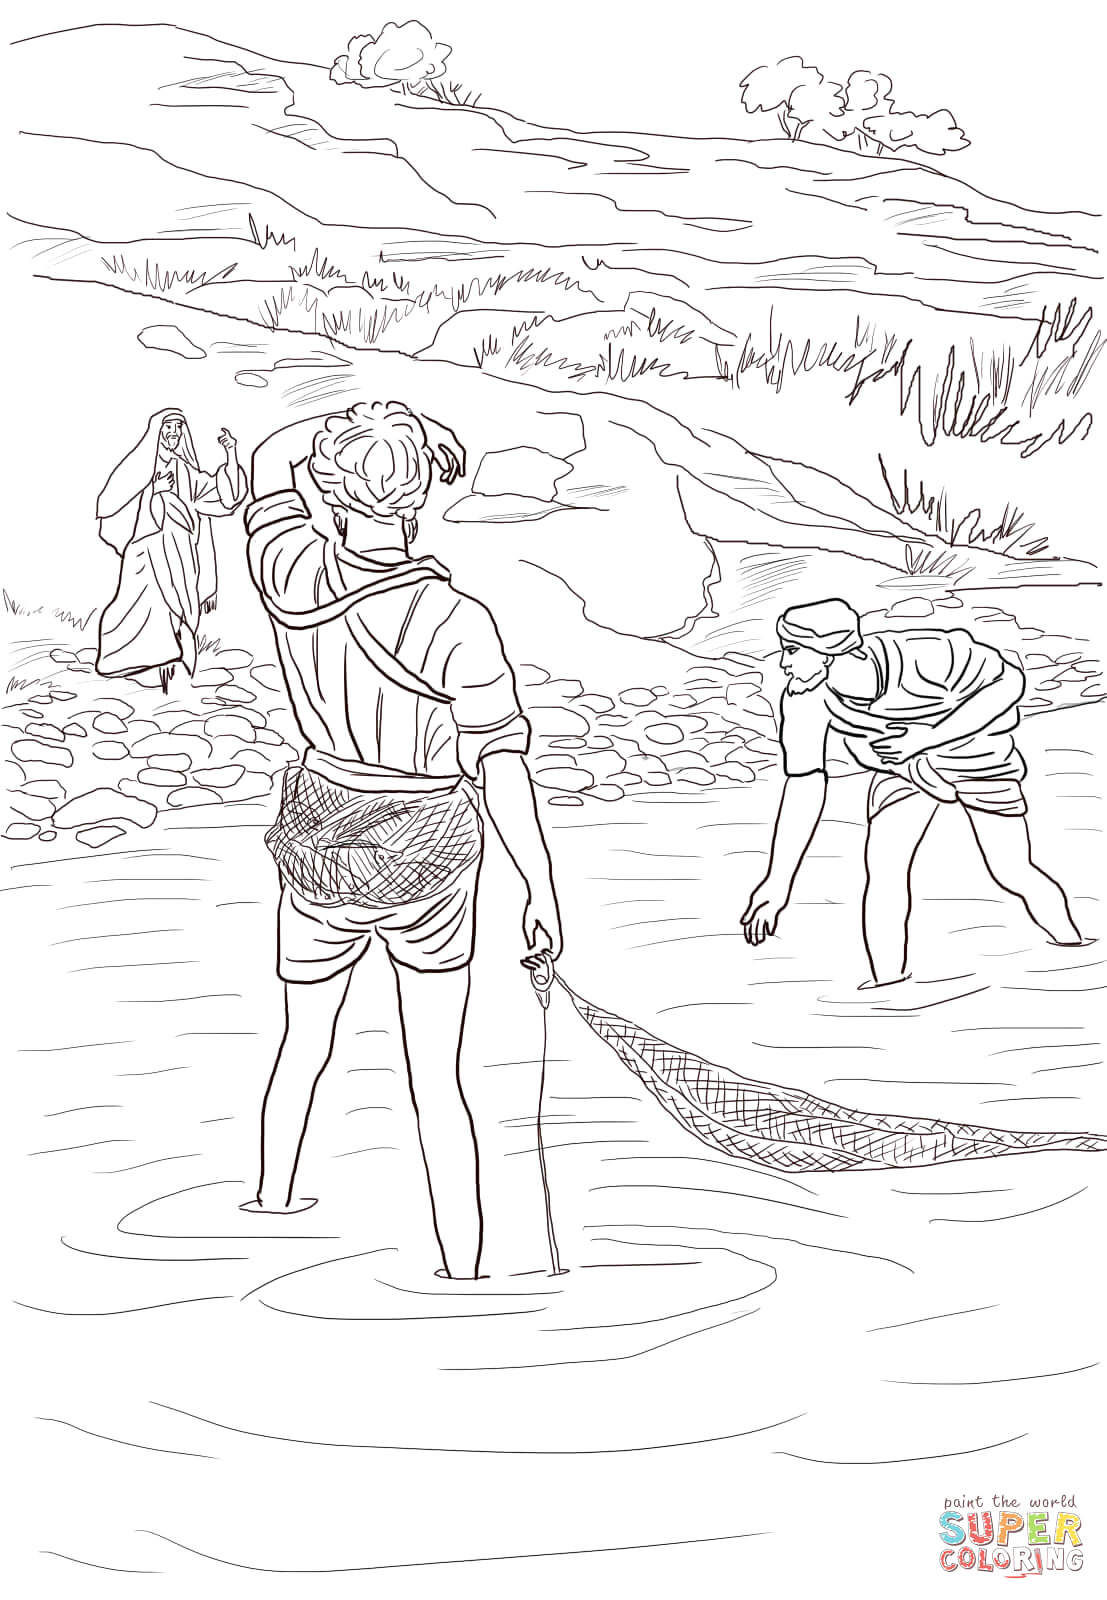 Jesus Calls Peter and andrew Coloring Page Jesus Calls Peter and andrew Coloring Page